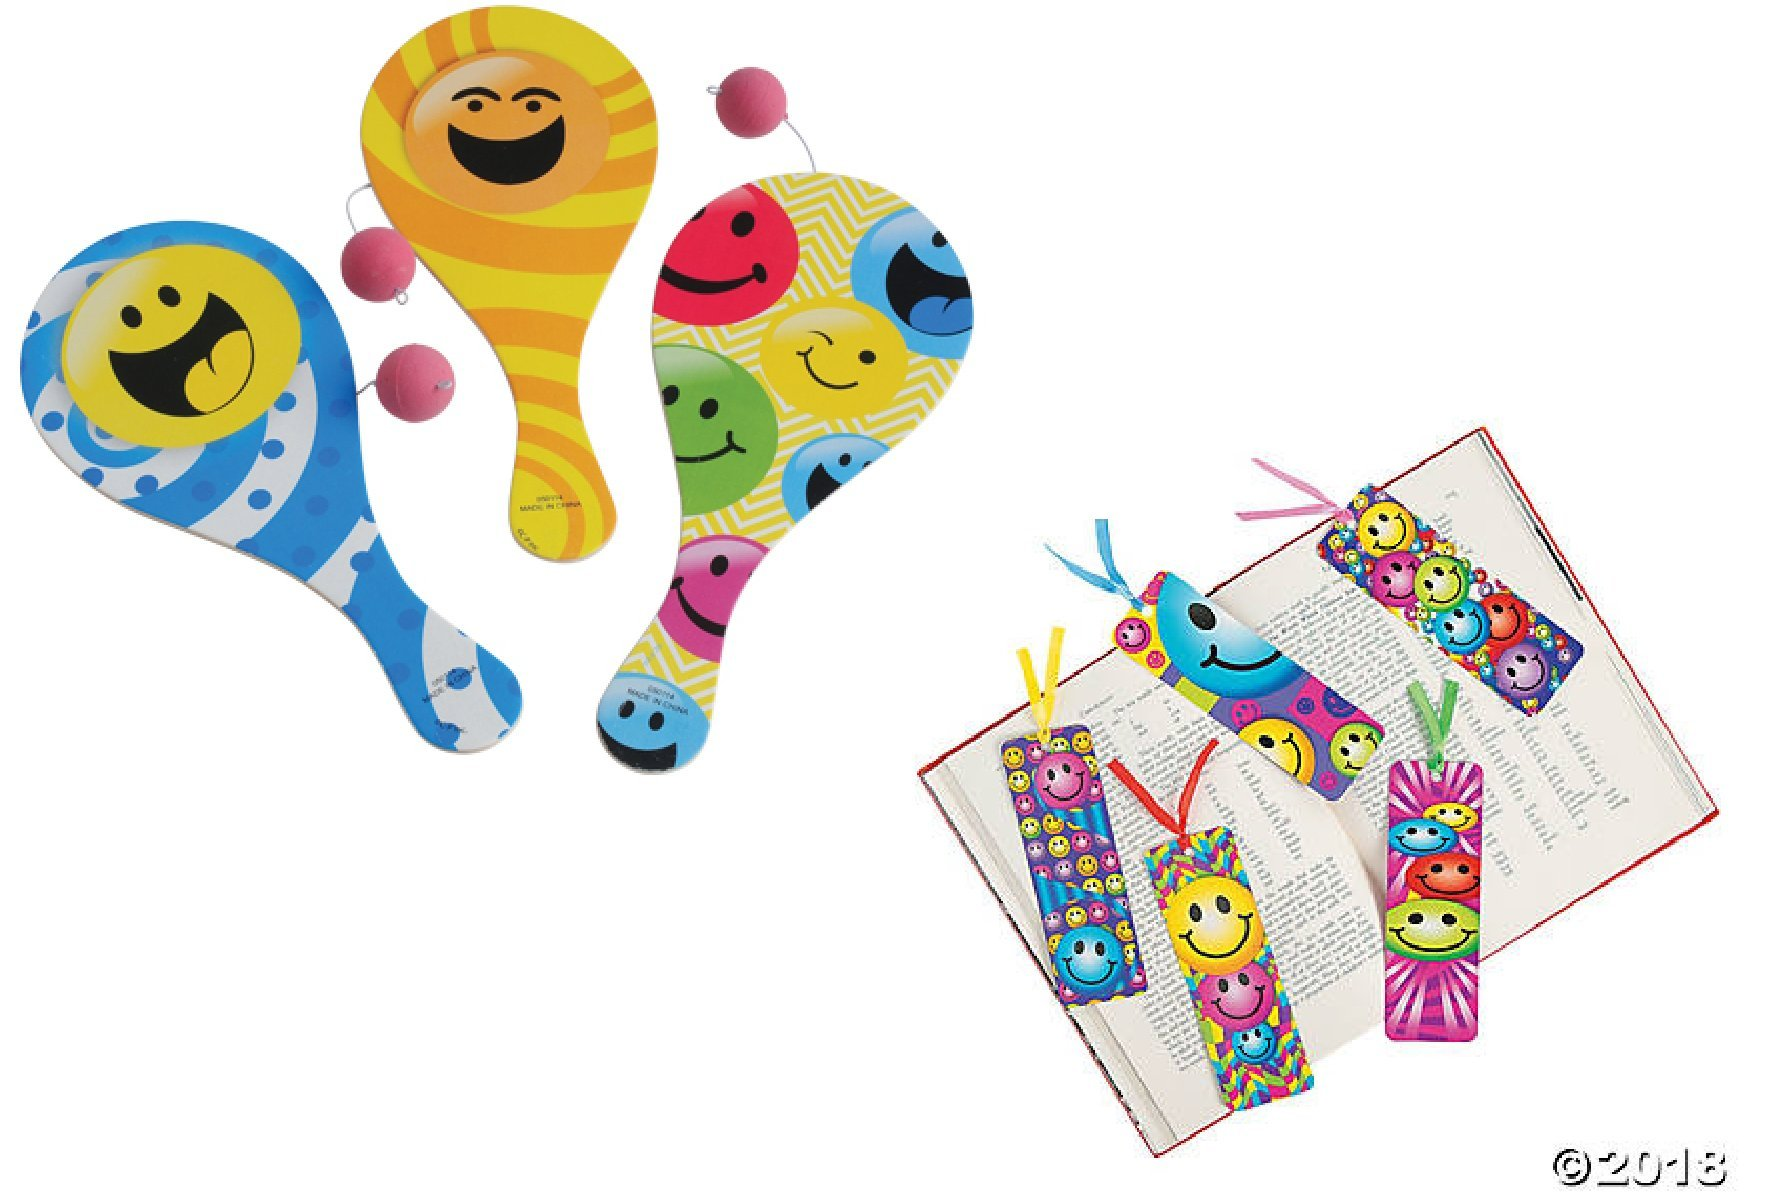 60 Cute Smiley Face Party Favors - 1 DZ (12) Smiley Paddleball games & 4 DZ (48) Smile Bookmarks - Smiley Emoji Gift party Student Reward Classroom Giveaway